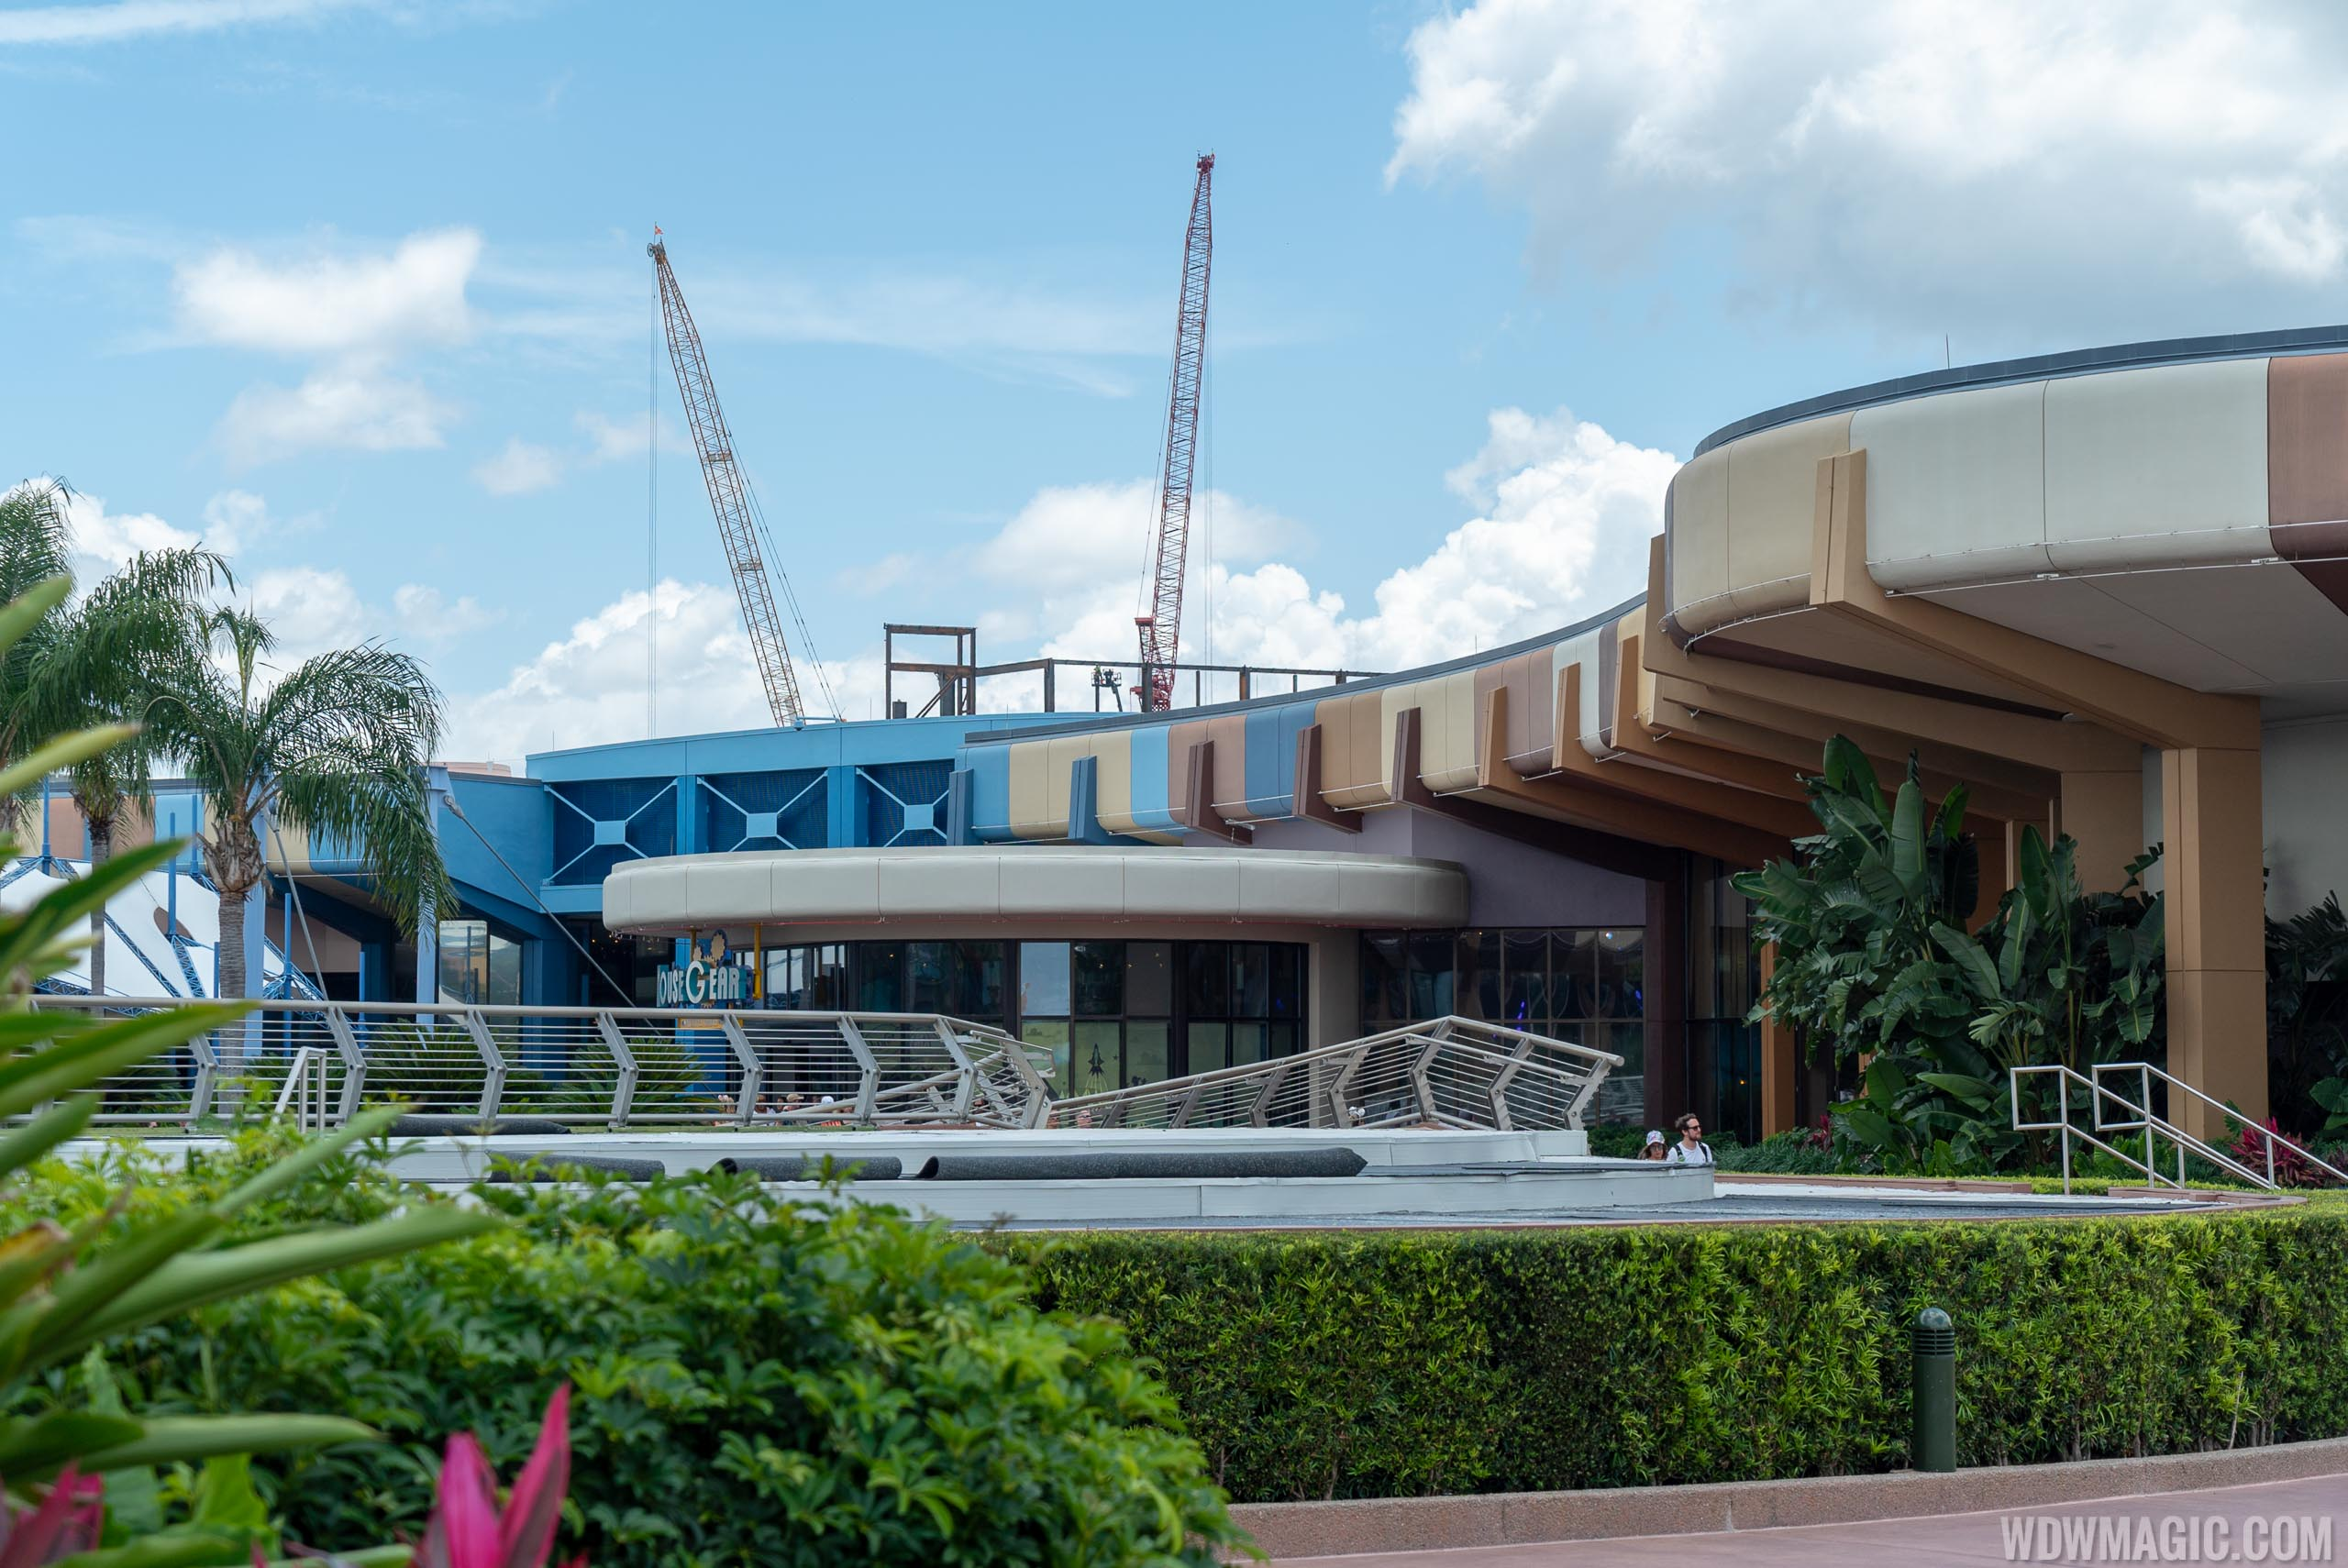 Guardians of the Galaxy viewed from Future World area